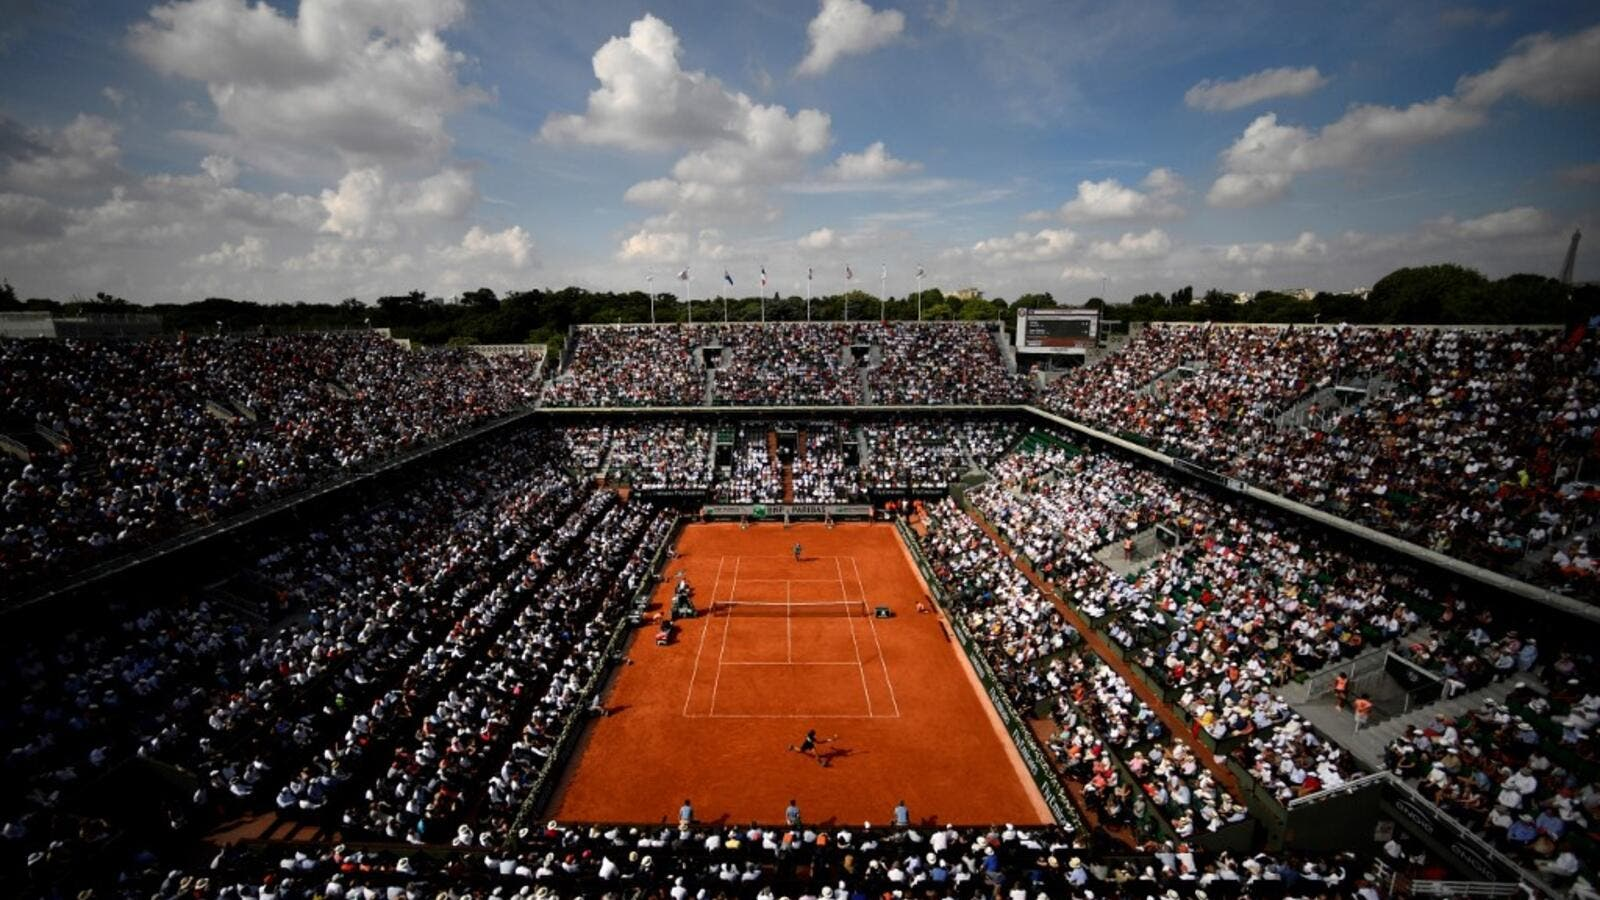 French Open may be held without fans